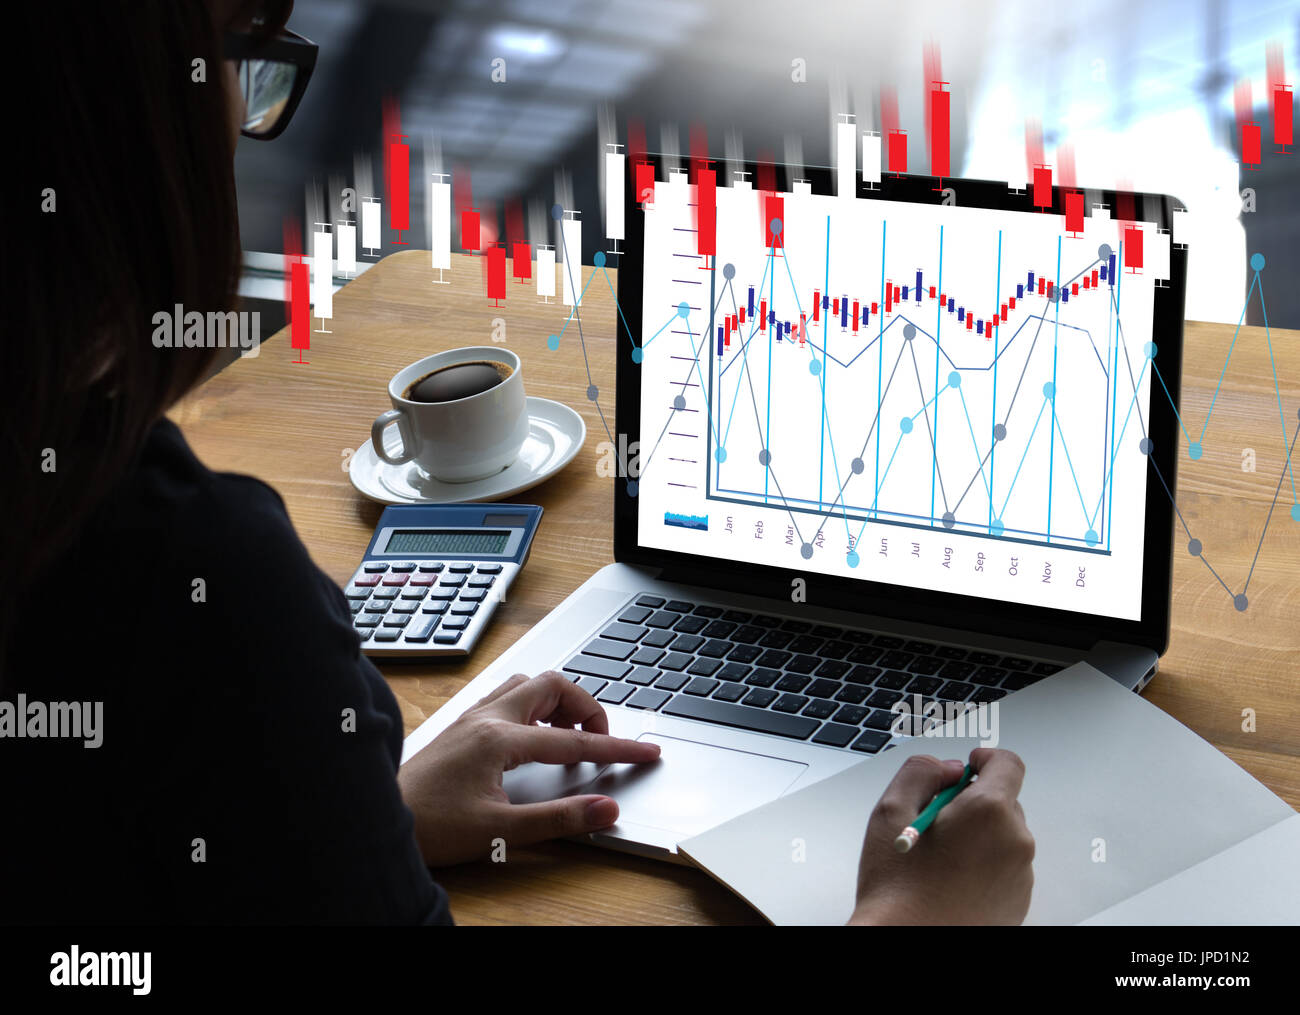 Financial forex Stock market, financial, business Candle stick graph chart - Stock Image